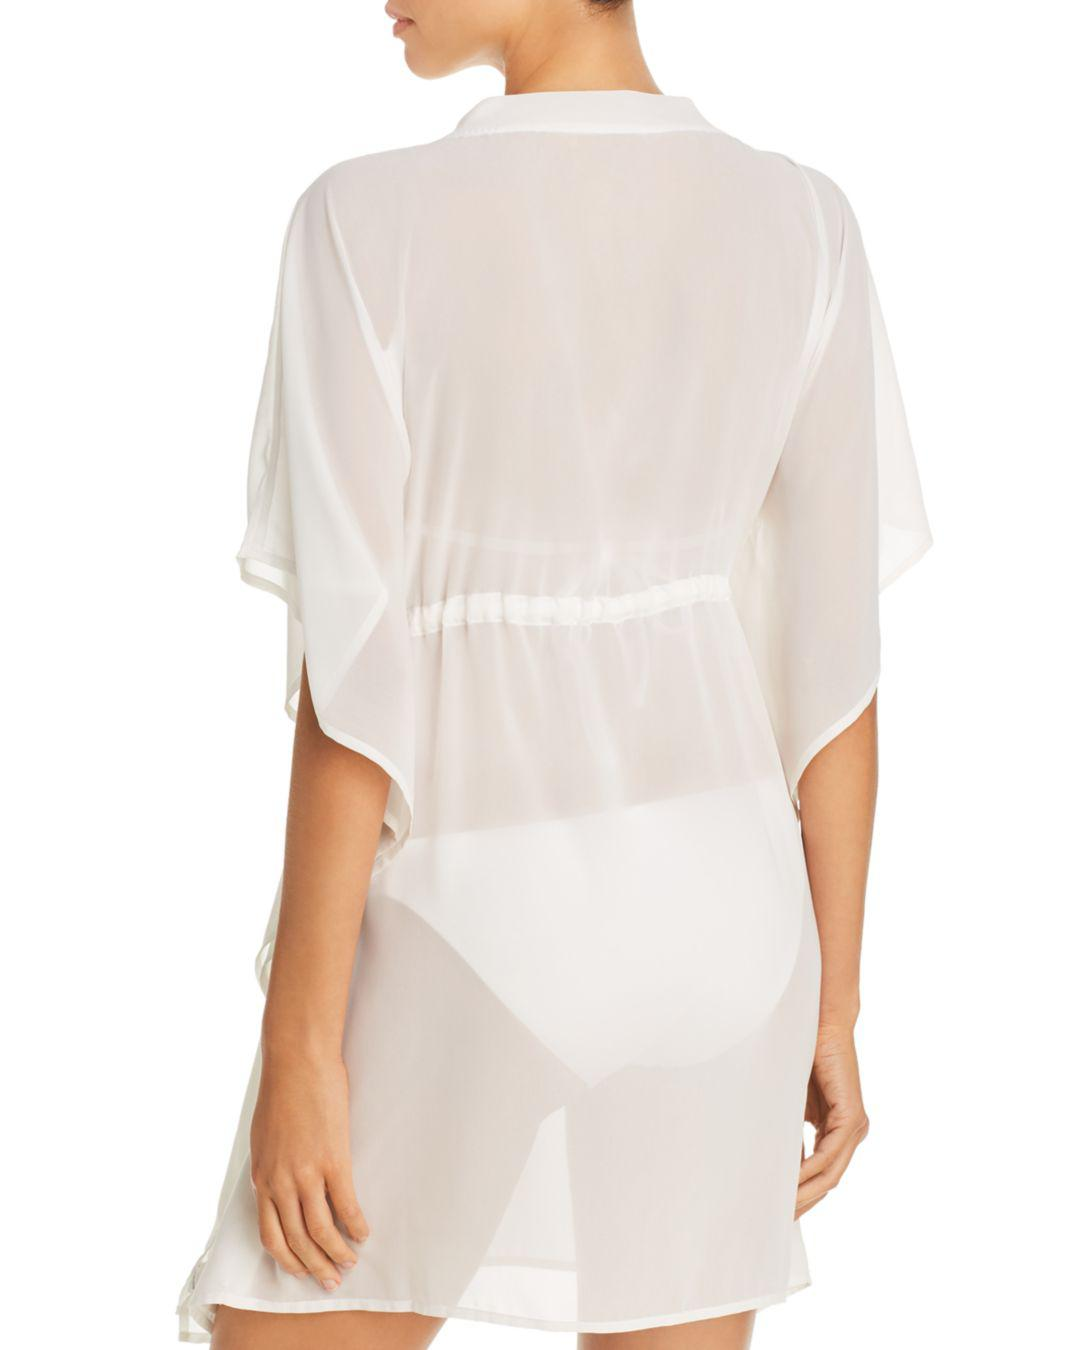 b24ad18183cfc Lyst - Echo Solid Classic Butterfly Swim Cover-up in White